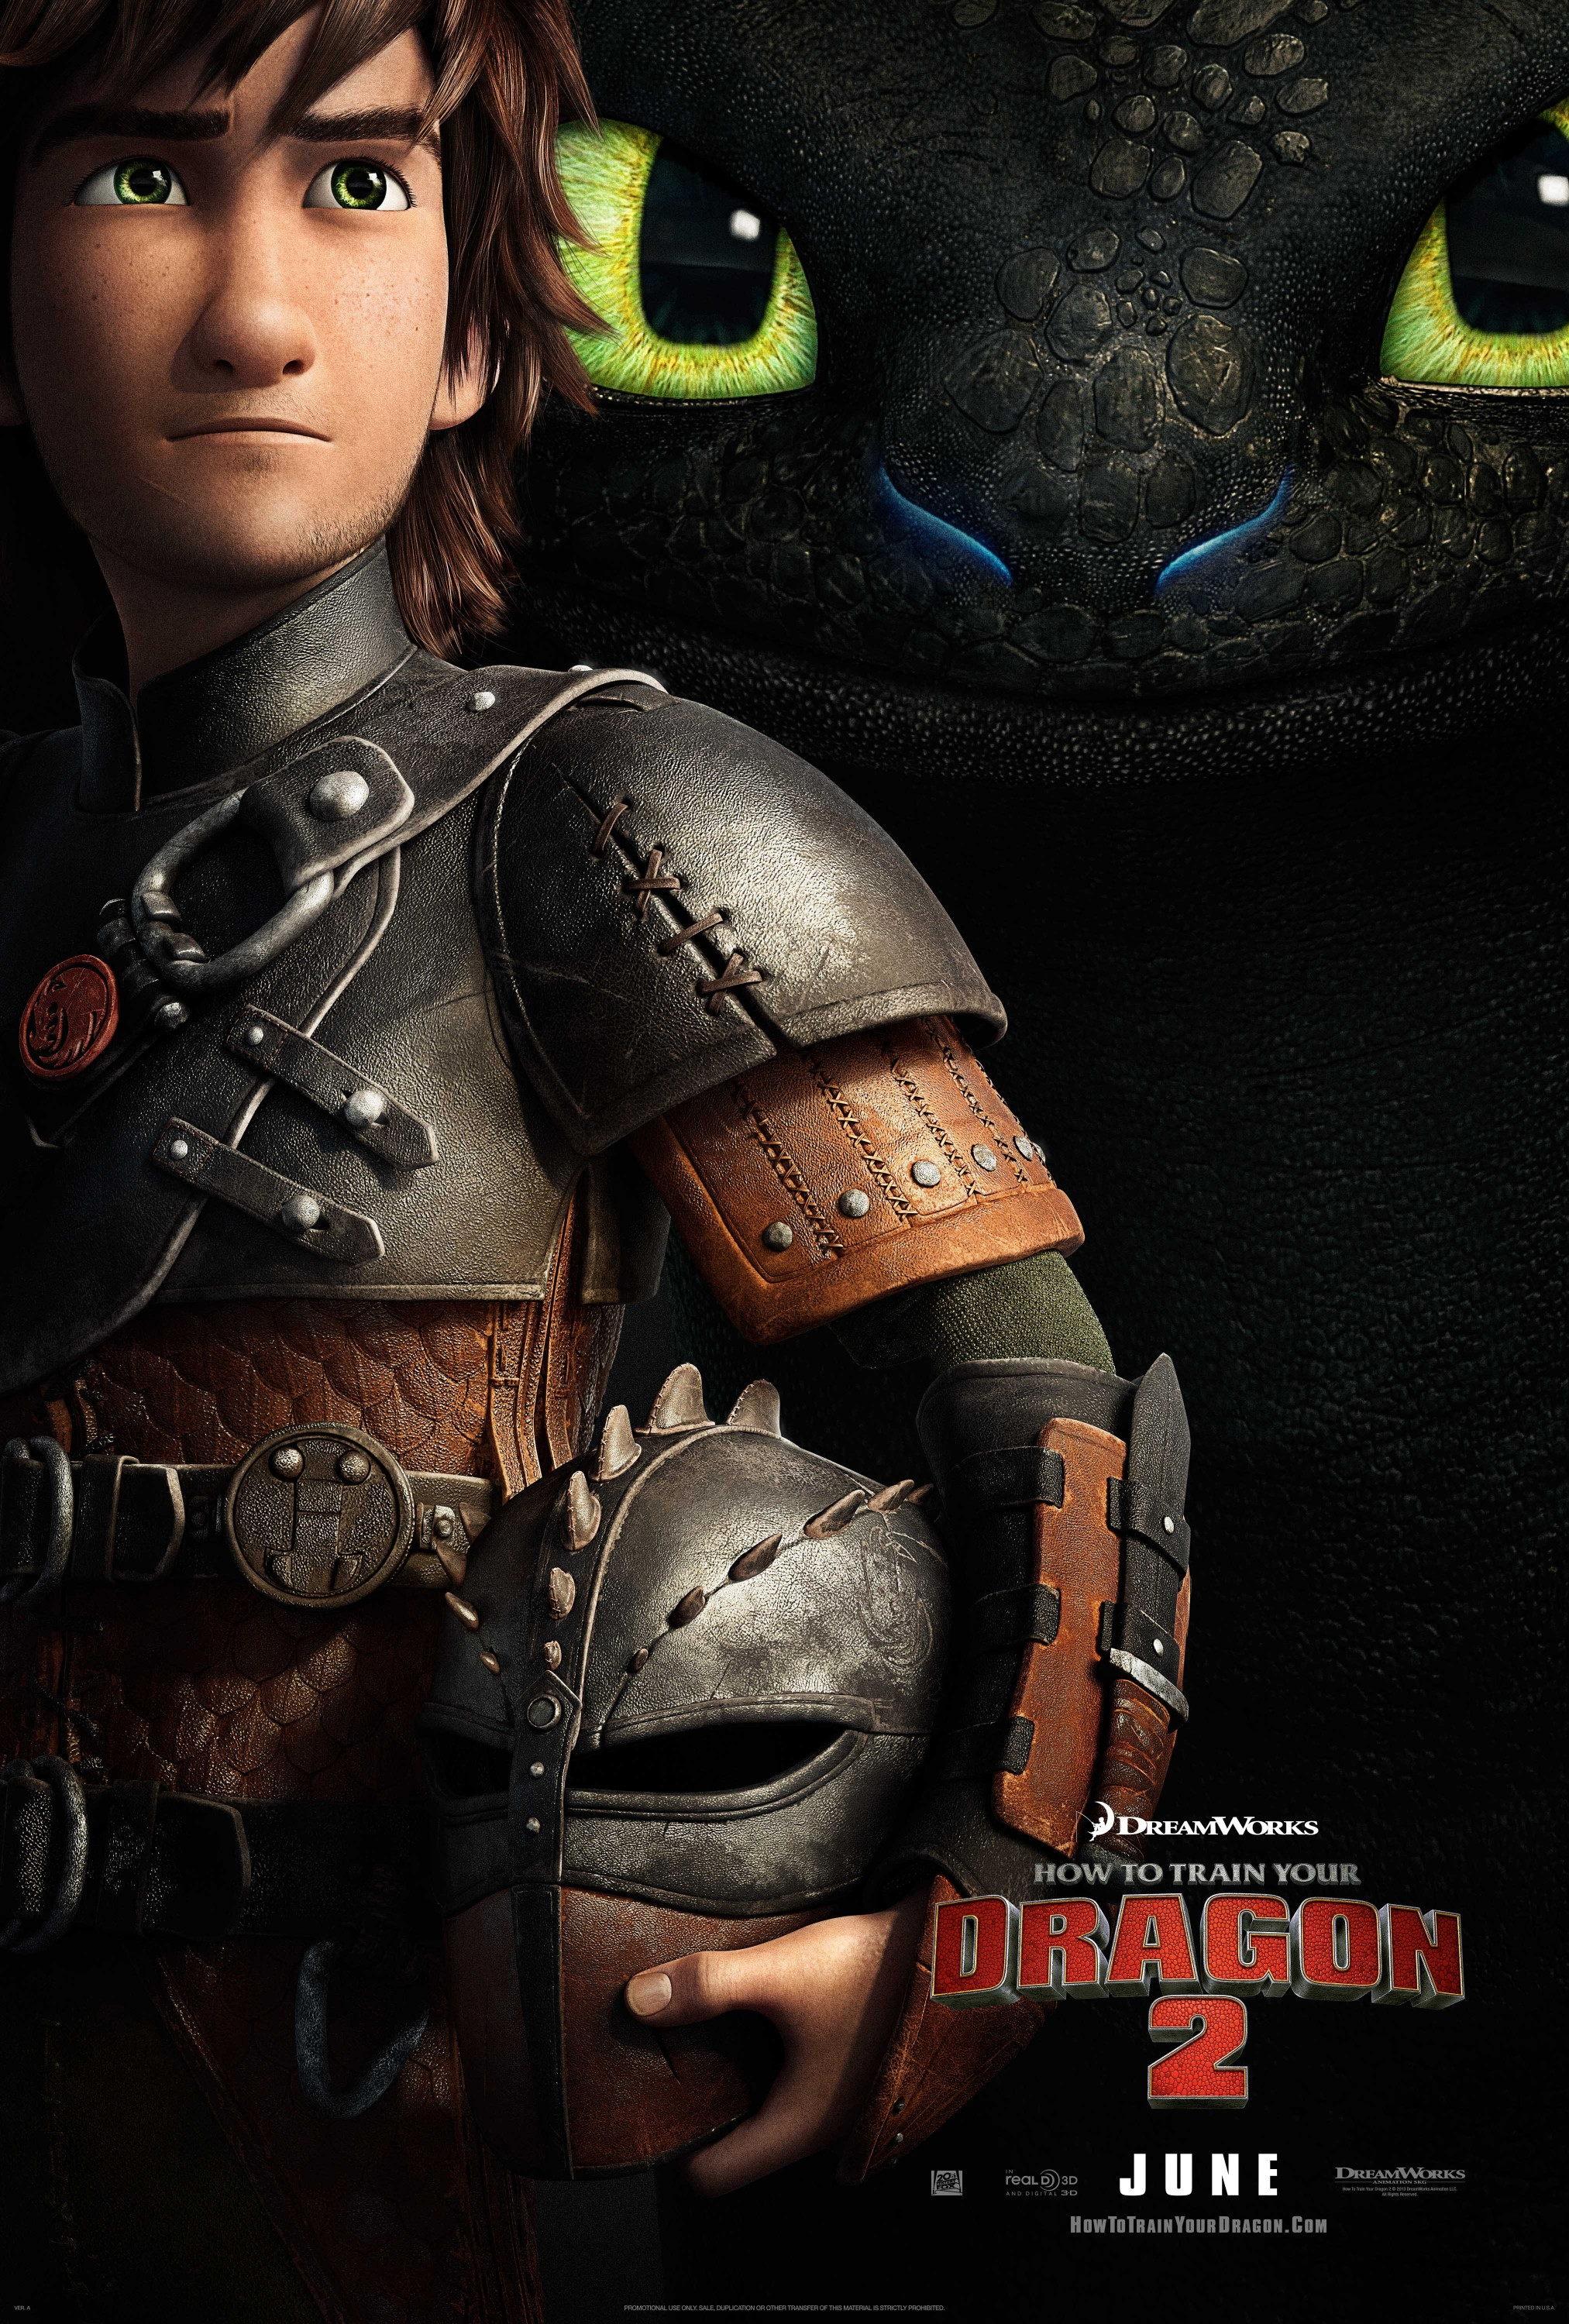 How to Train Your Dragon 2-Official Poster Banner PROMO POSTER XXLG-22NOVEMBRO2013